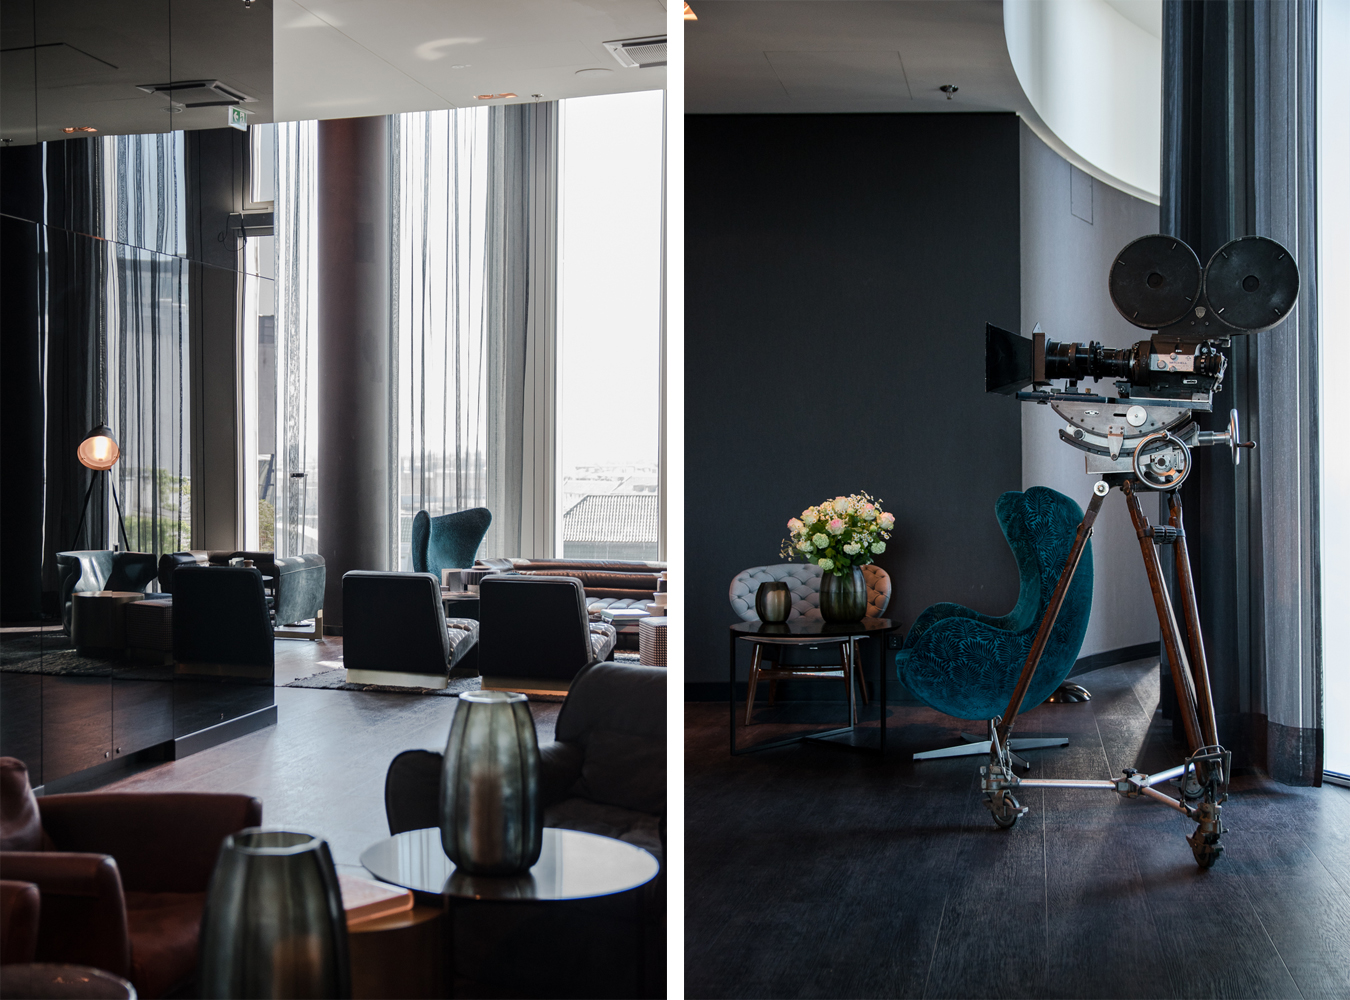 Hotel Tipp Berlin: Motel One Berlin Upper West